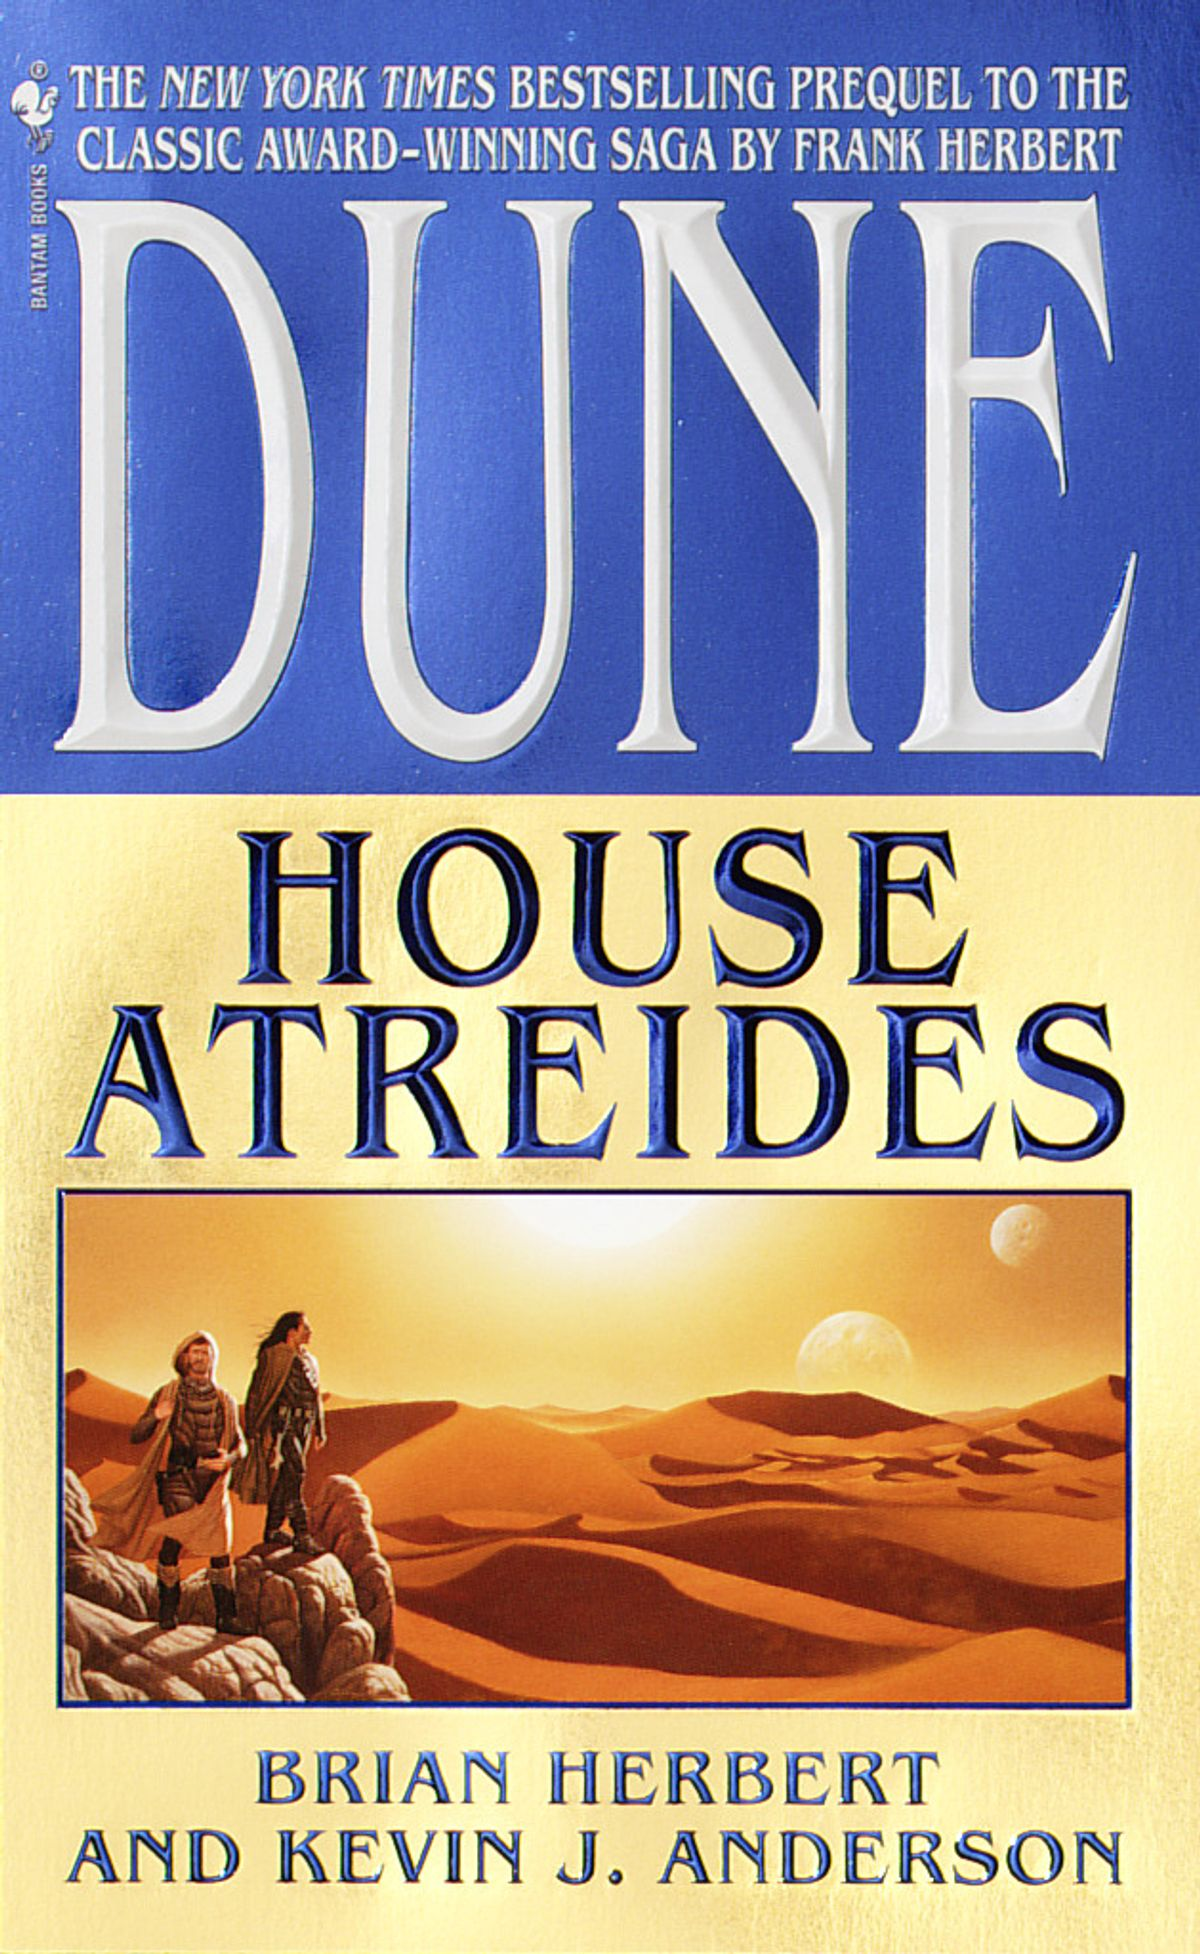 Dune House Atreides cover - Brian Herbert and Kevin J. Anderson